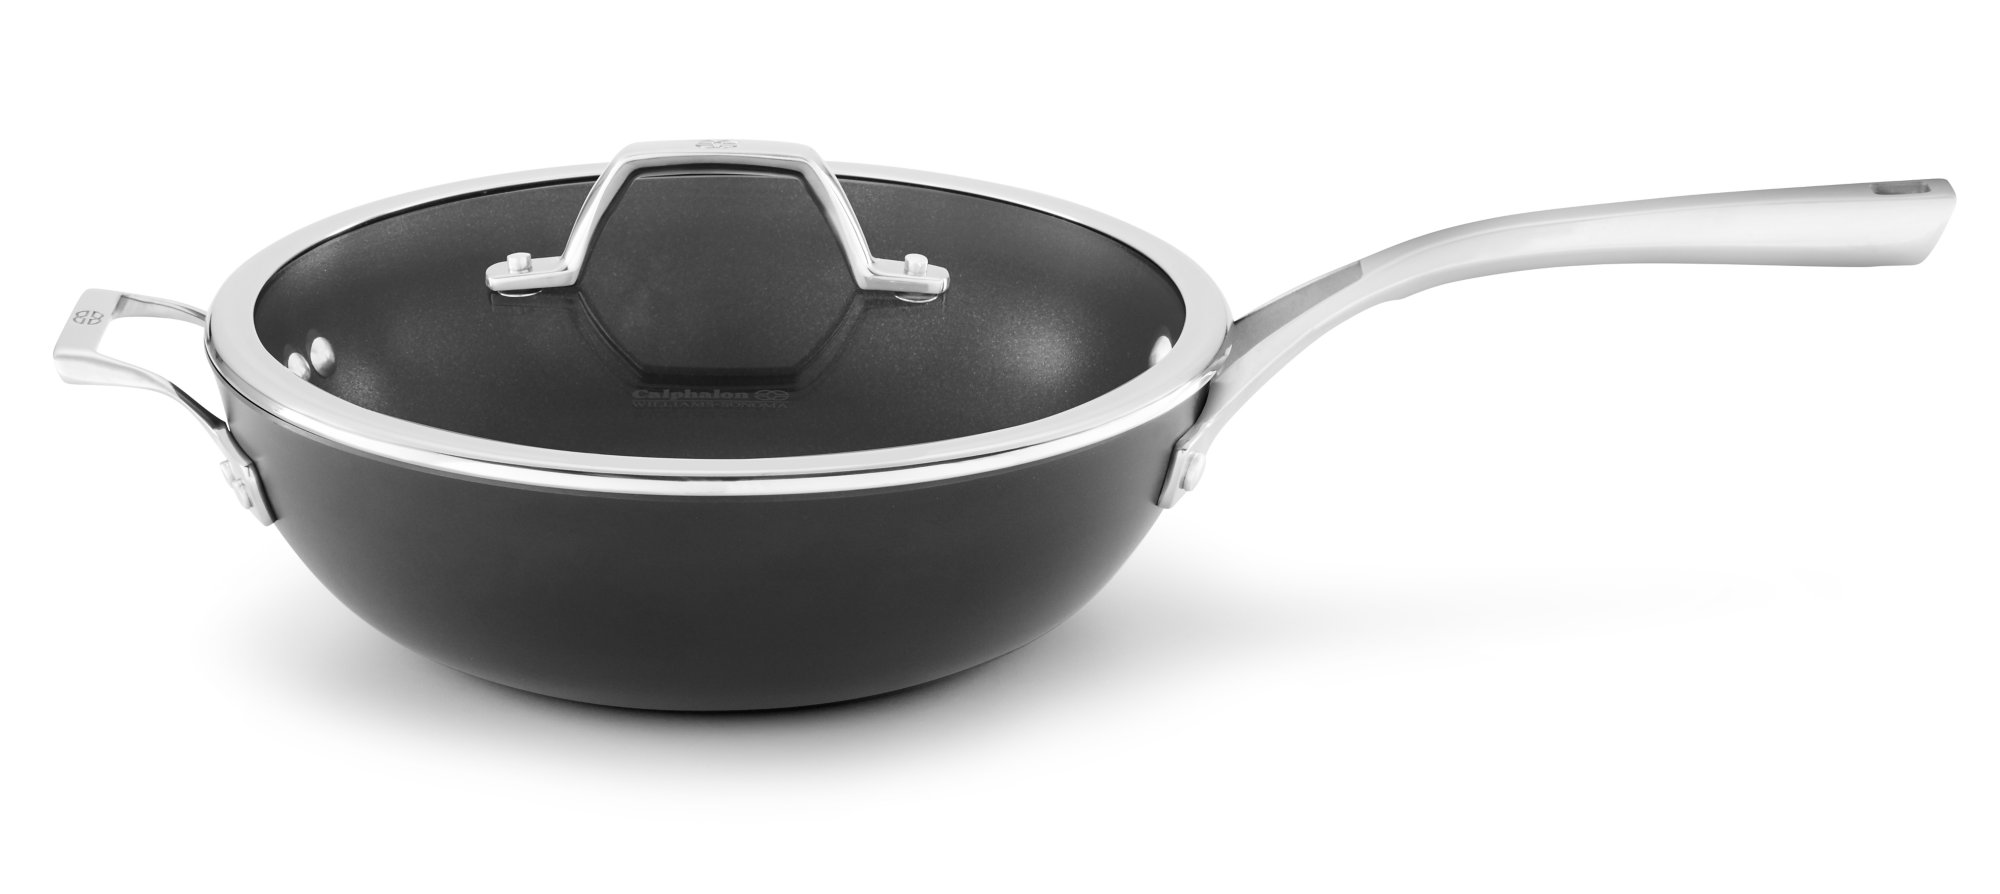 Calphalon Williams-Sonoma Elite Nonstick 4-Qt. Essentials Pan with Cover